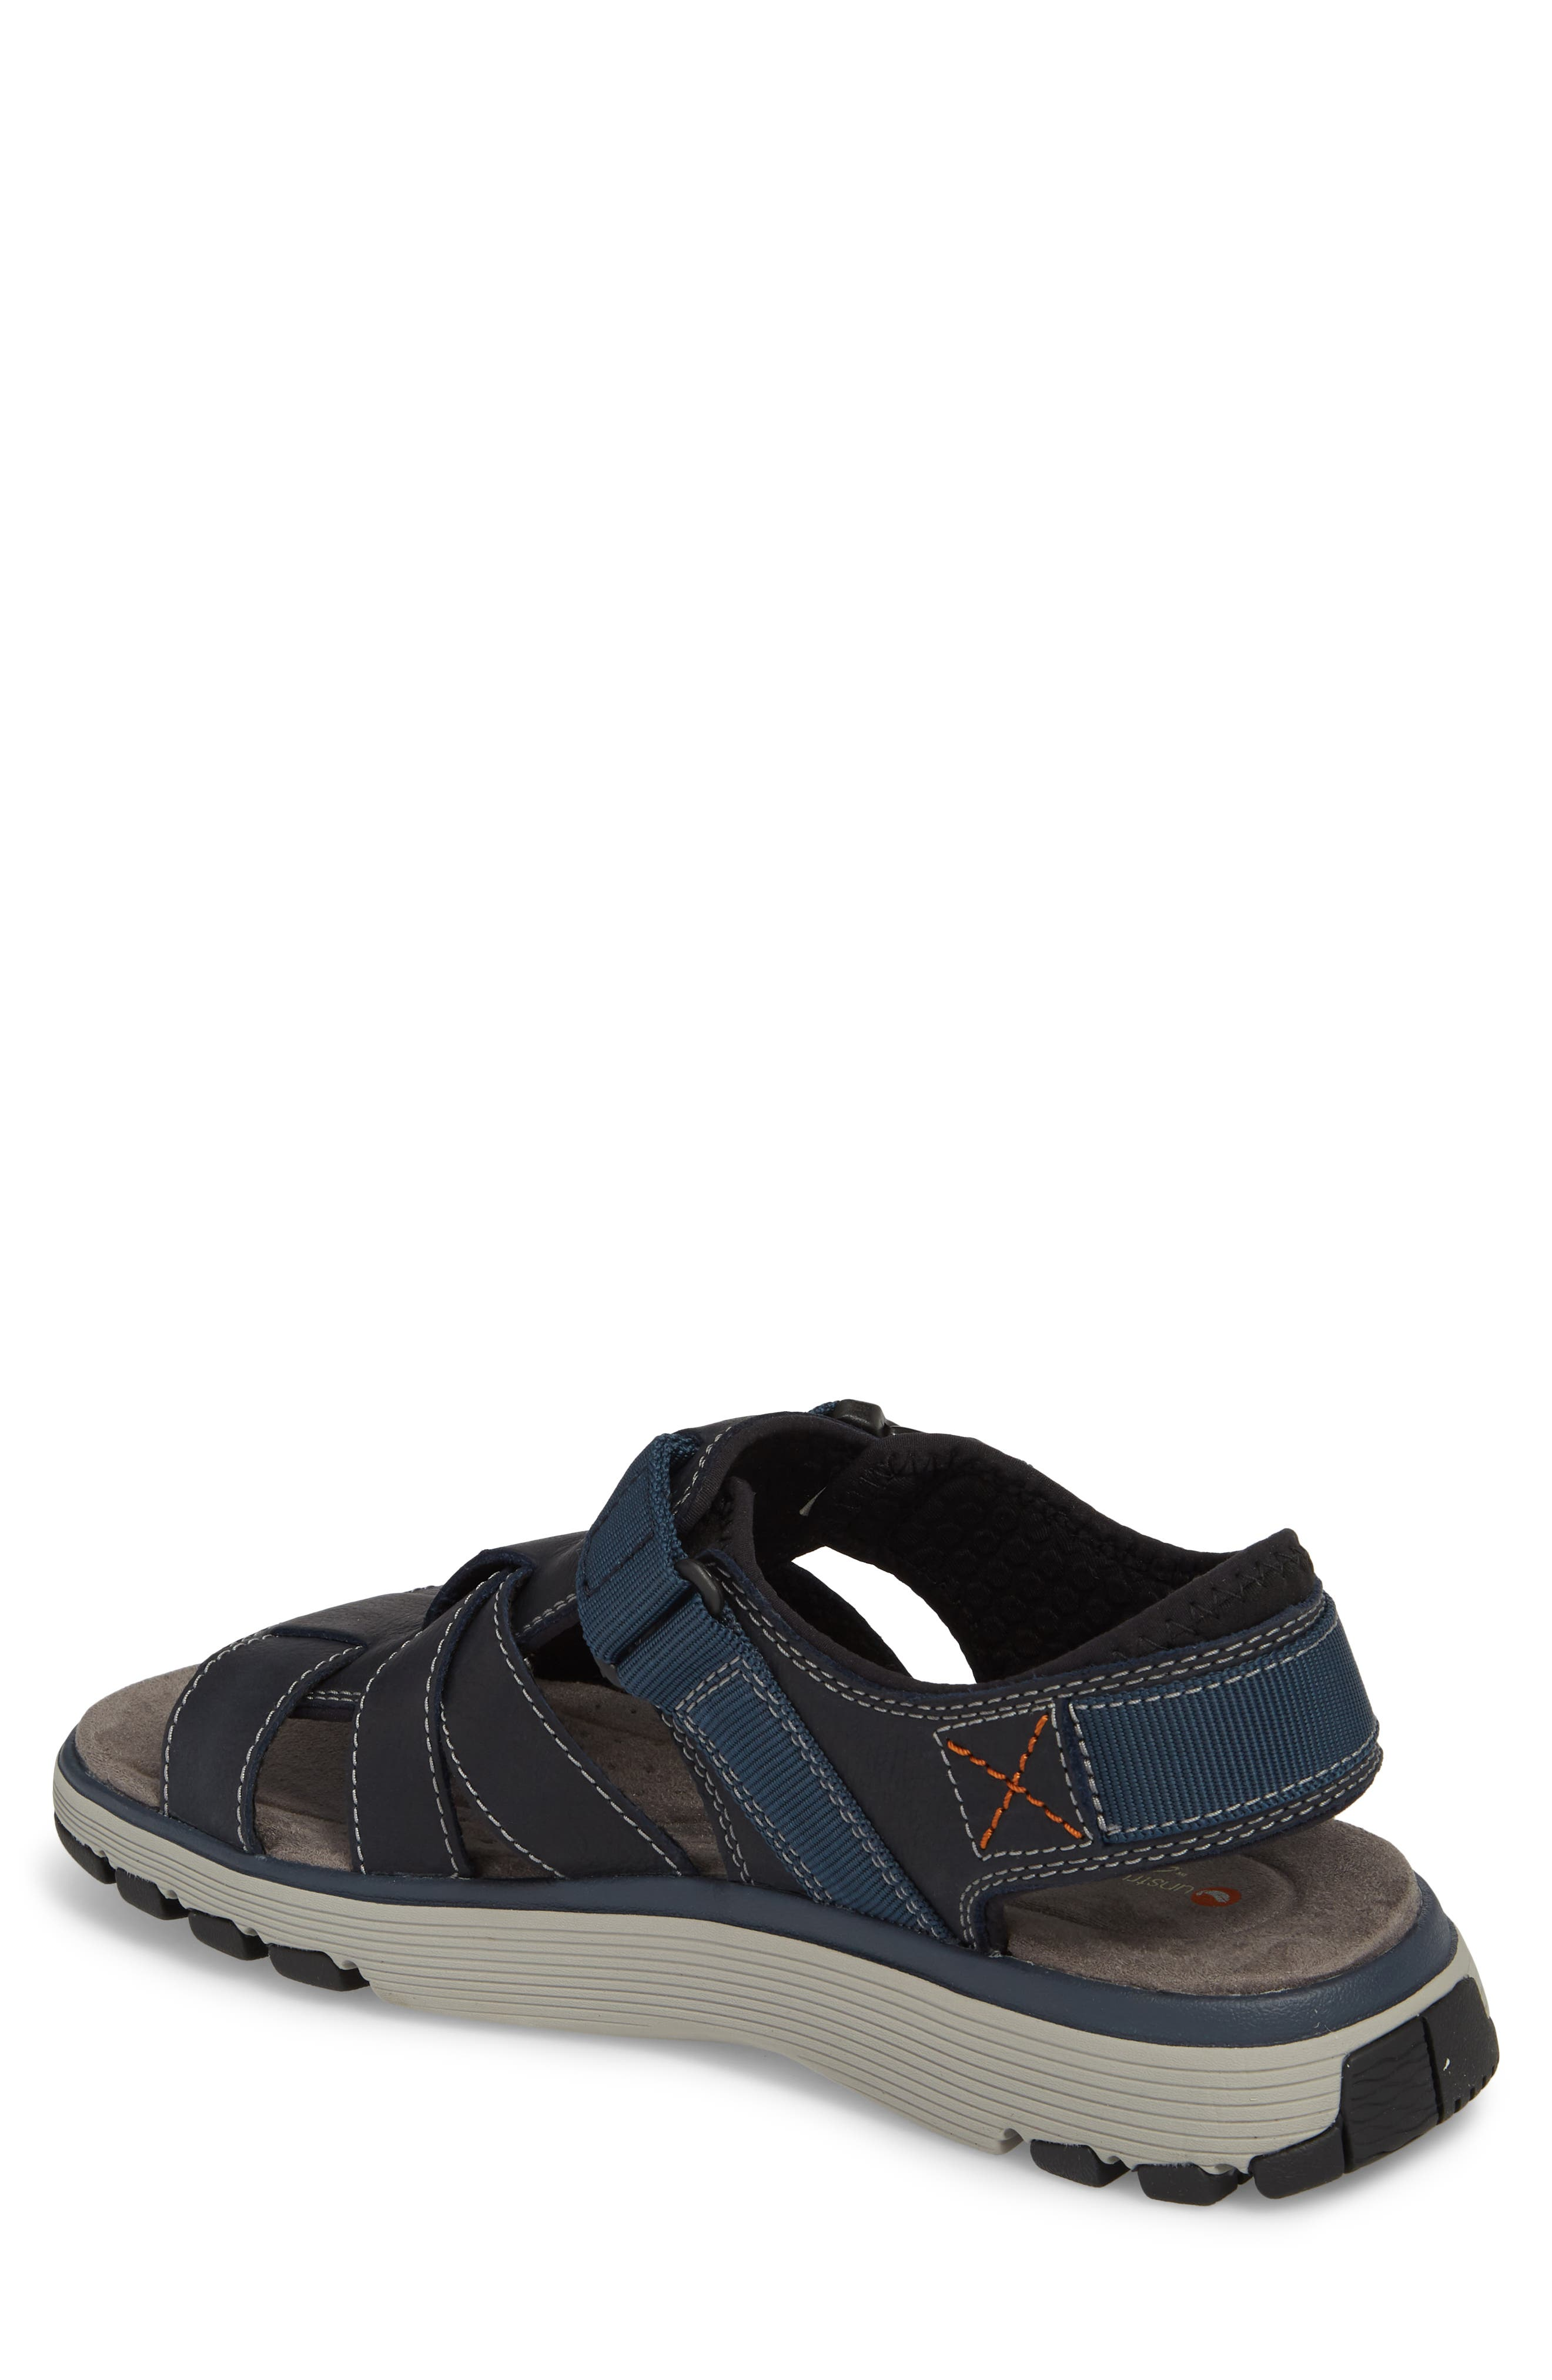 Clarks<sup>®</sup> Untrek Cove Fisherman Sandal,                             Alternate thumbnail 4, color,